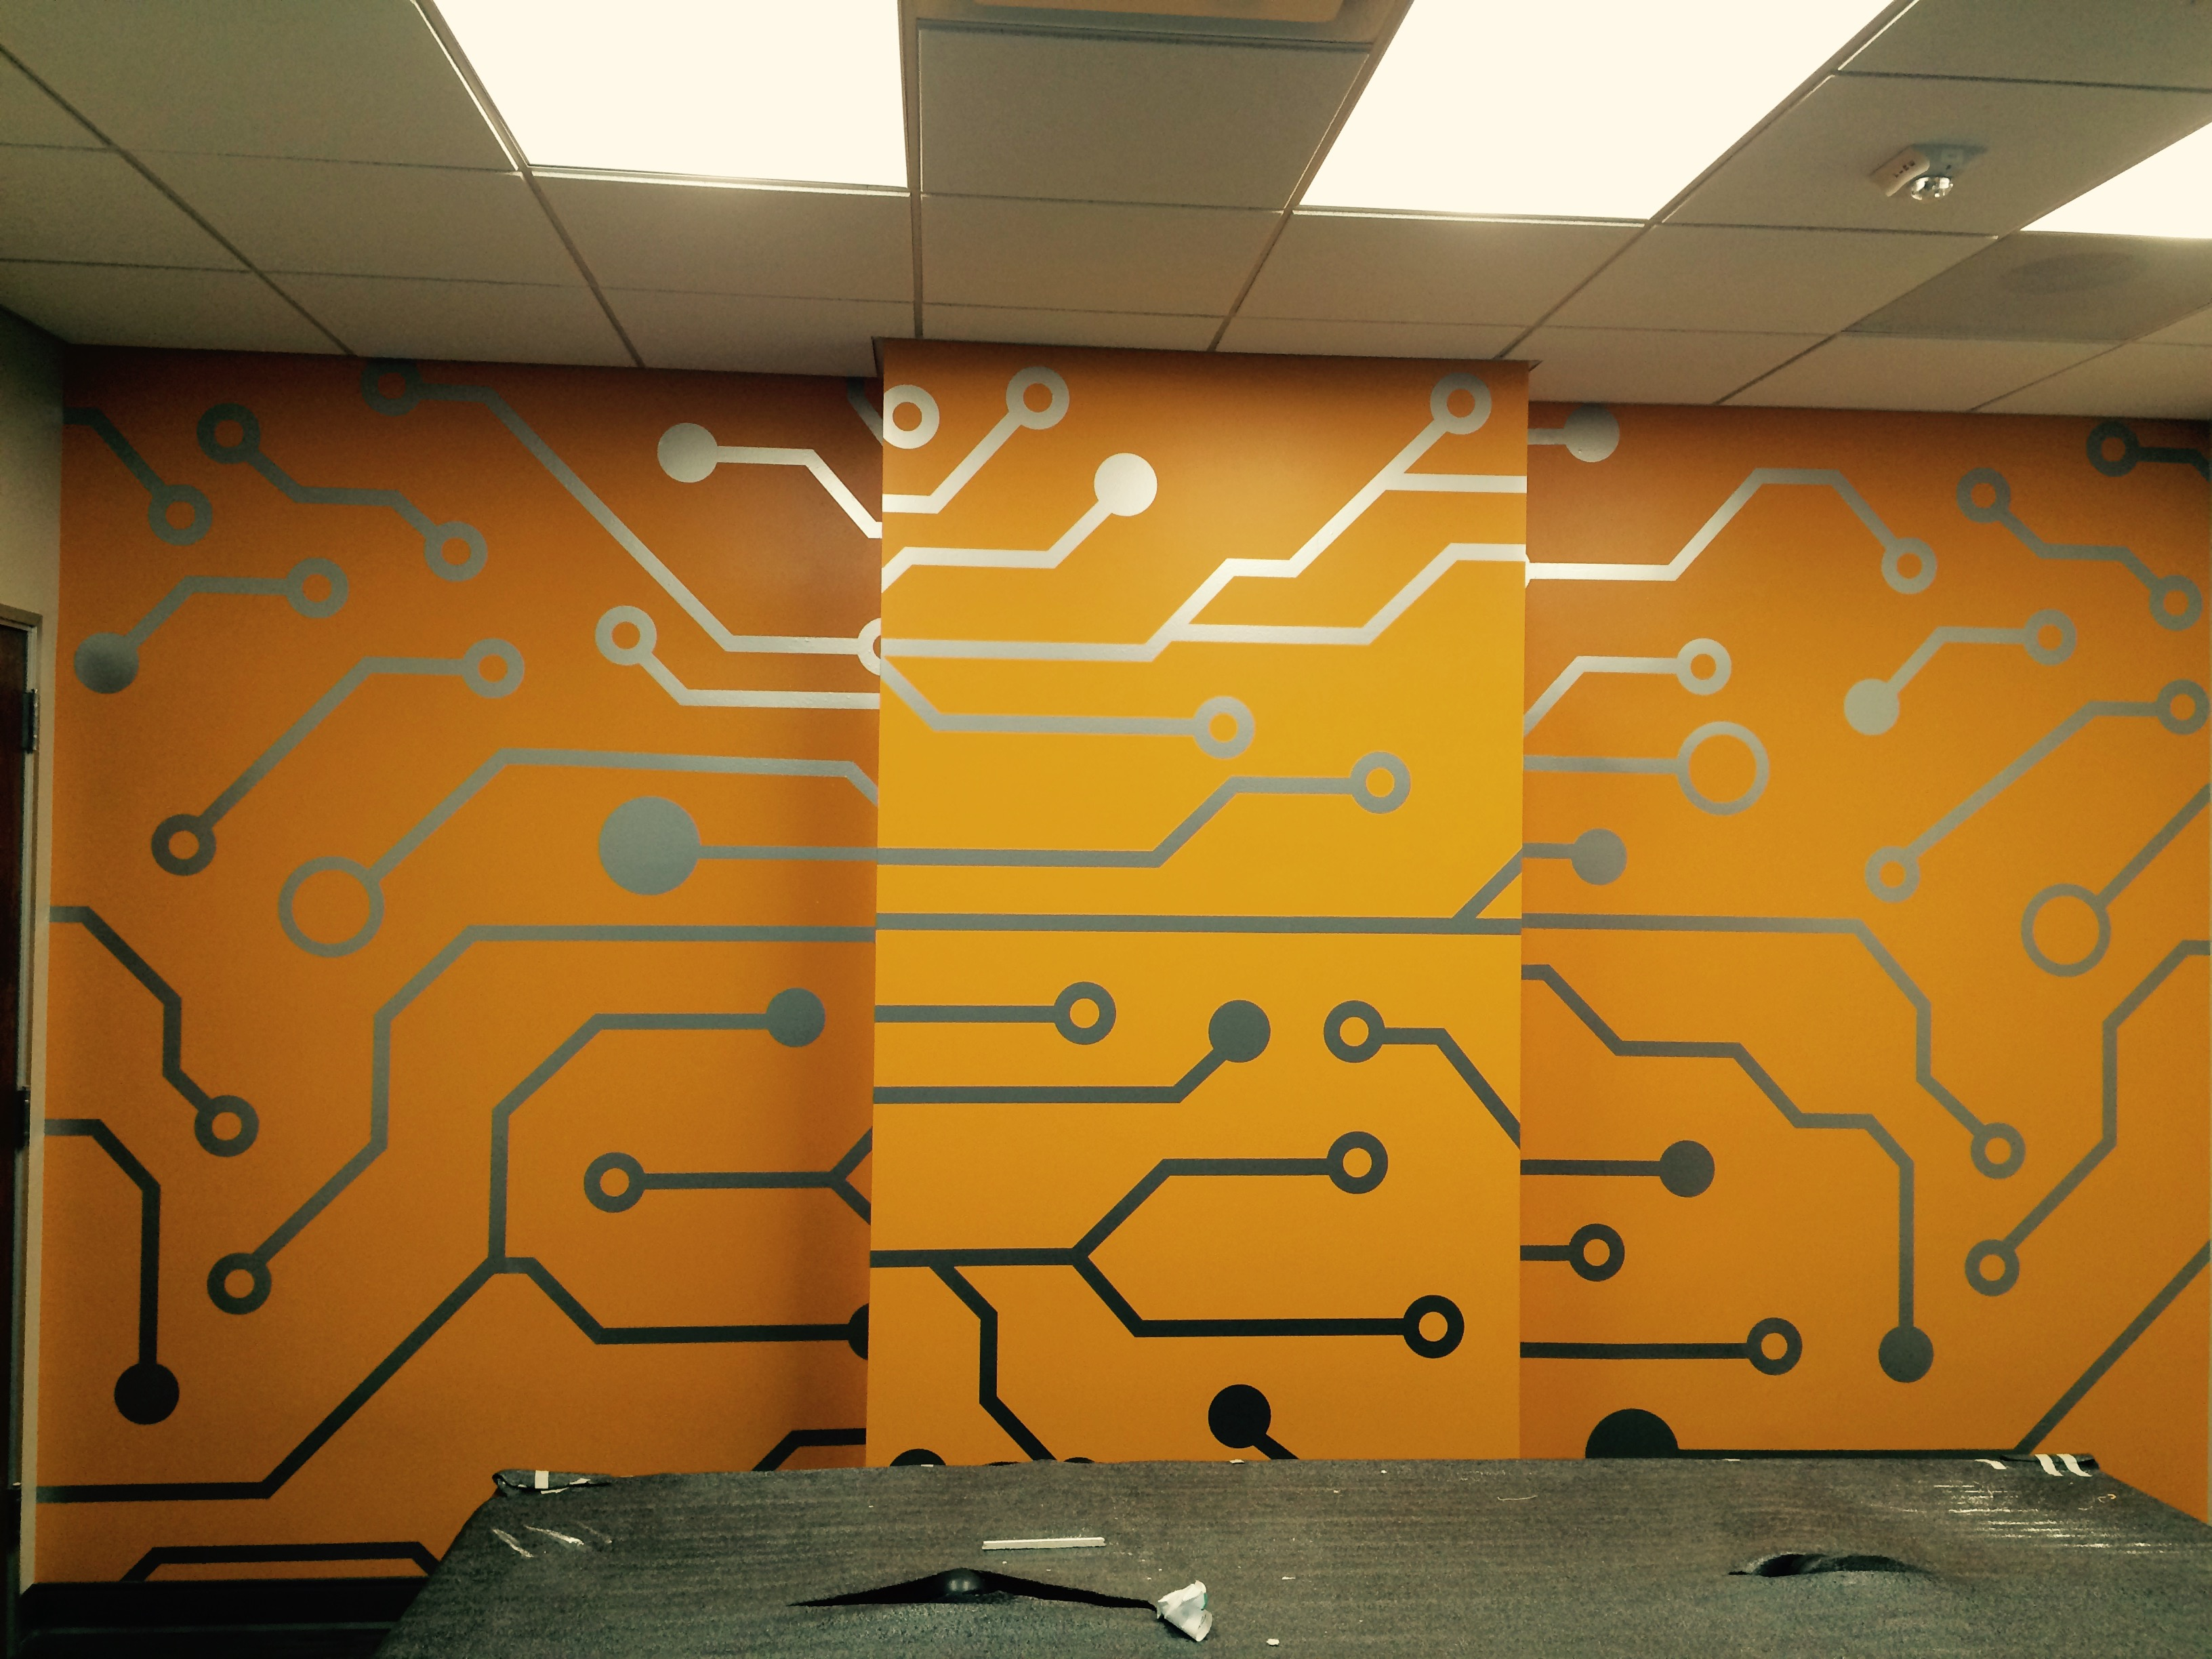 Silver cut vinyl wall graphics - Printing Specialists